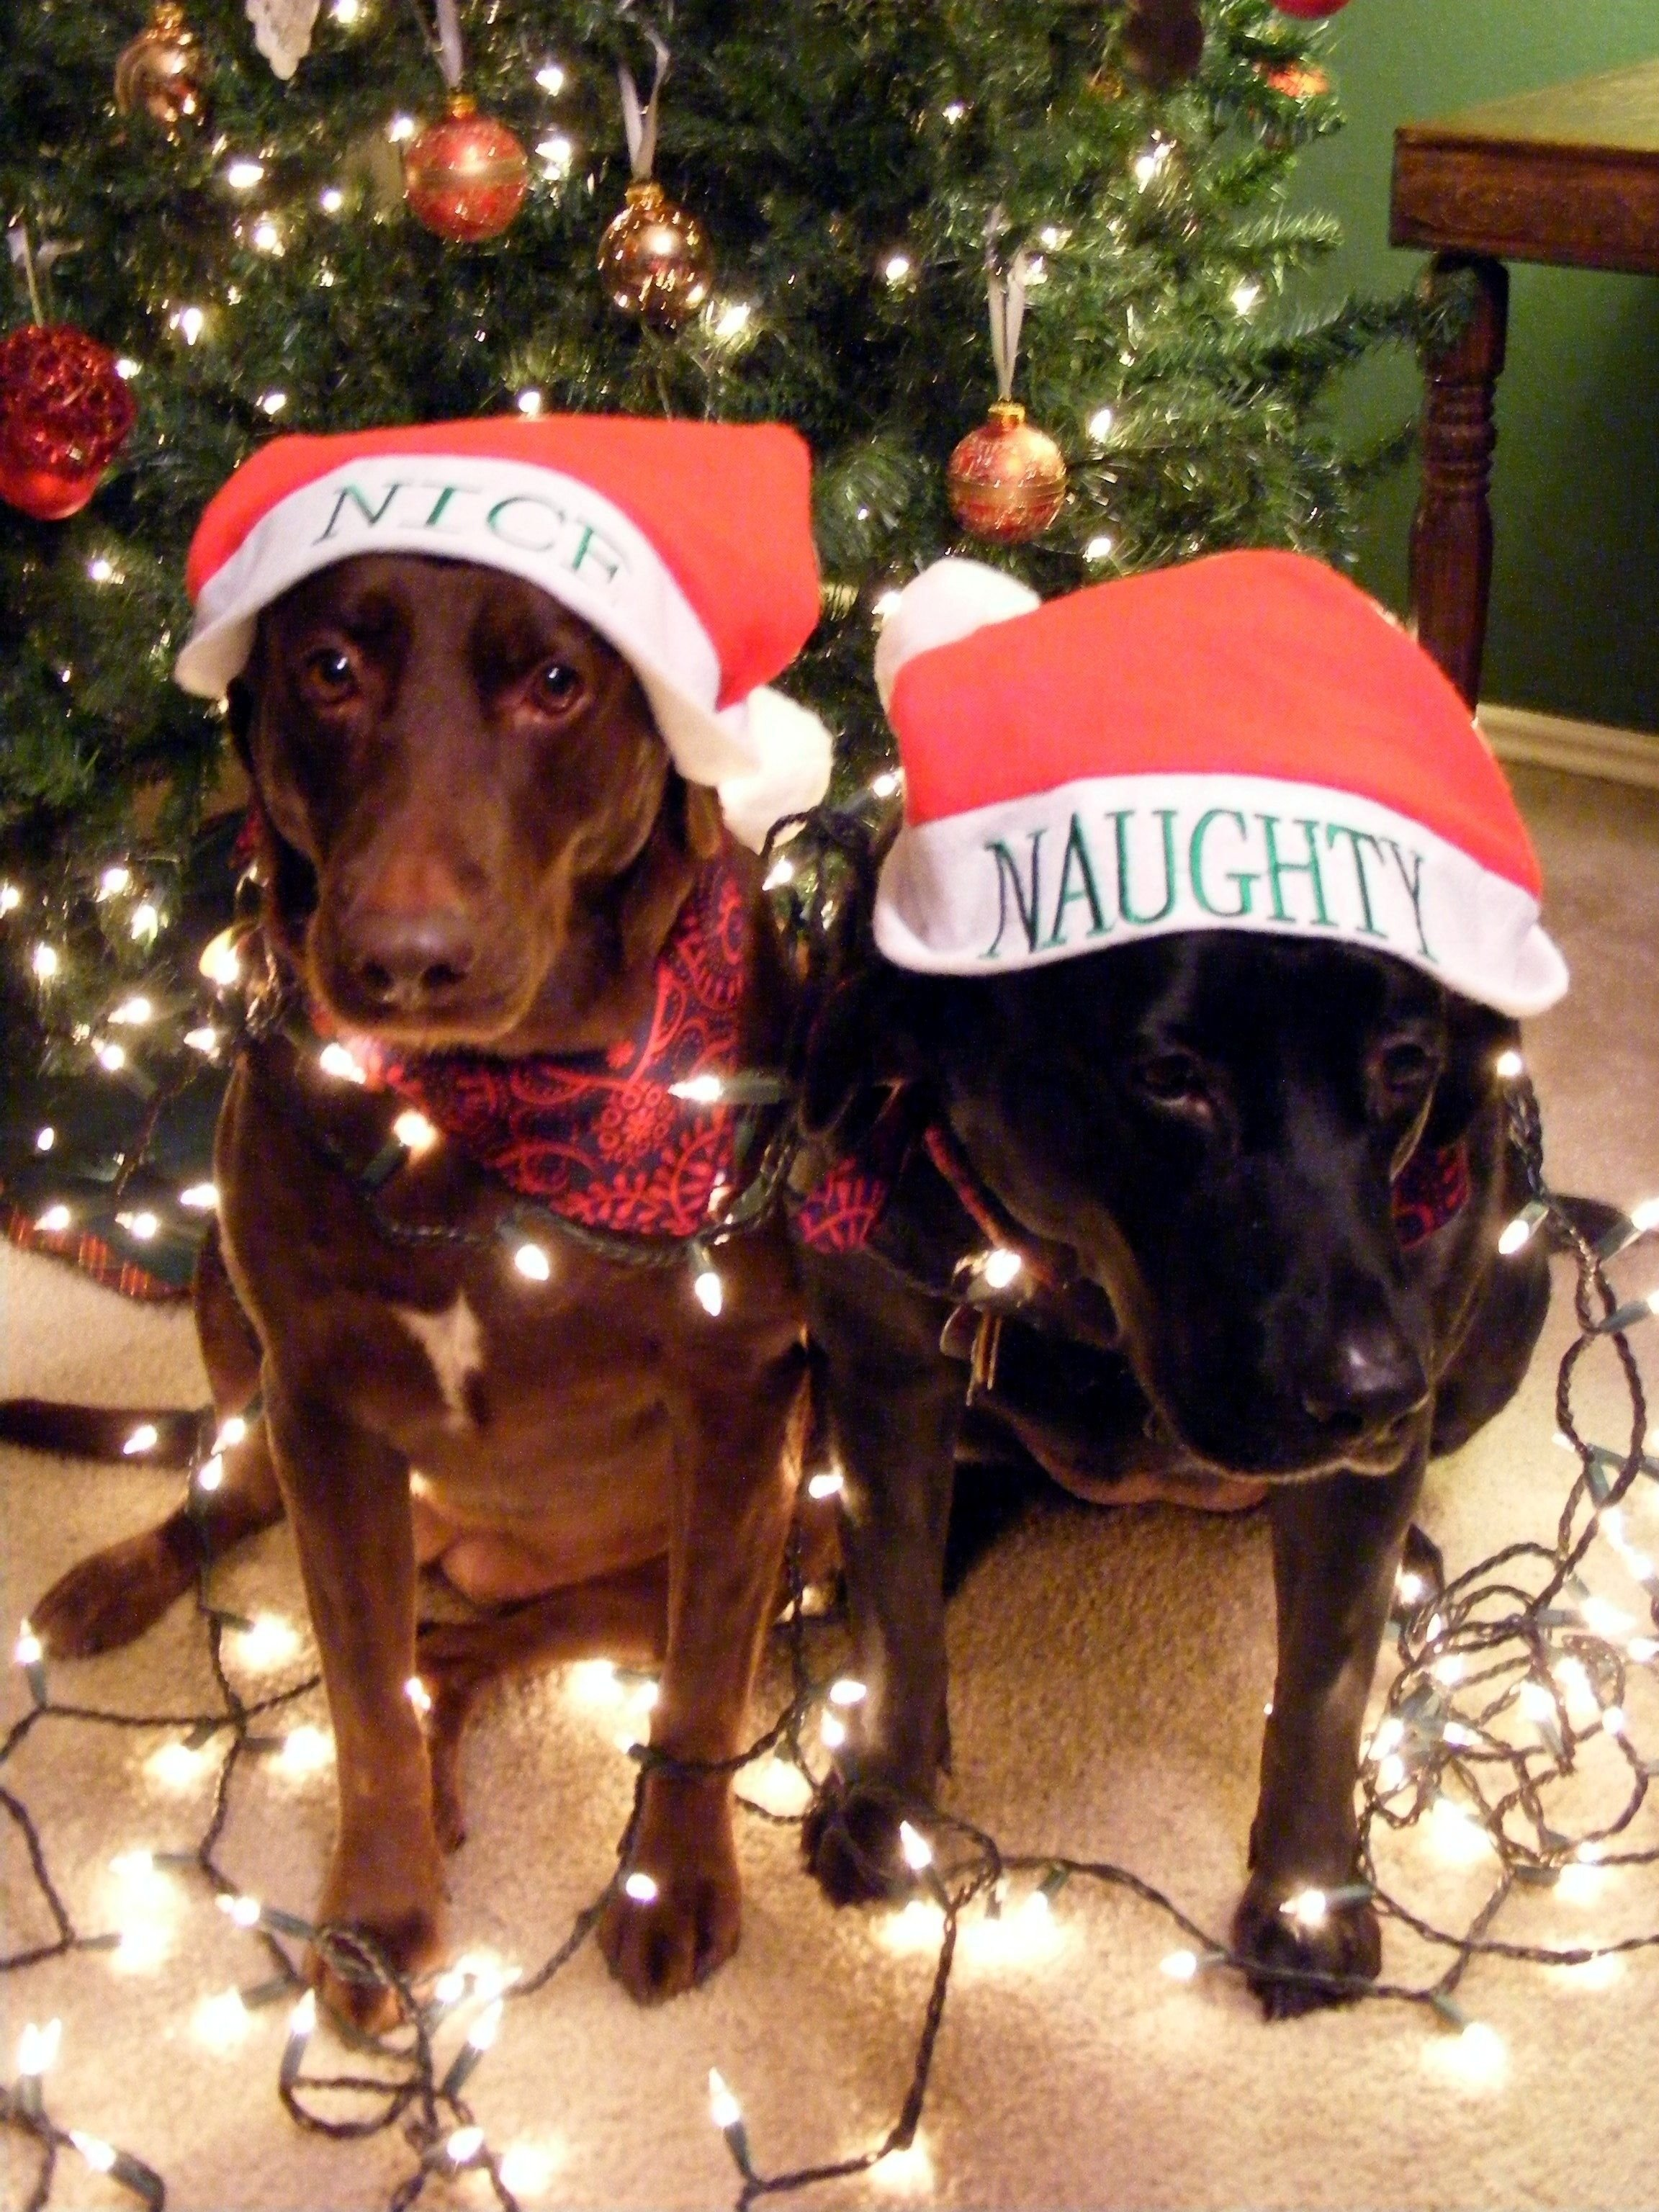 10 Attractive Christmas Card Ideas With Dogs my dog bella chloe for our christmas lights card idea 2010 my 2021